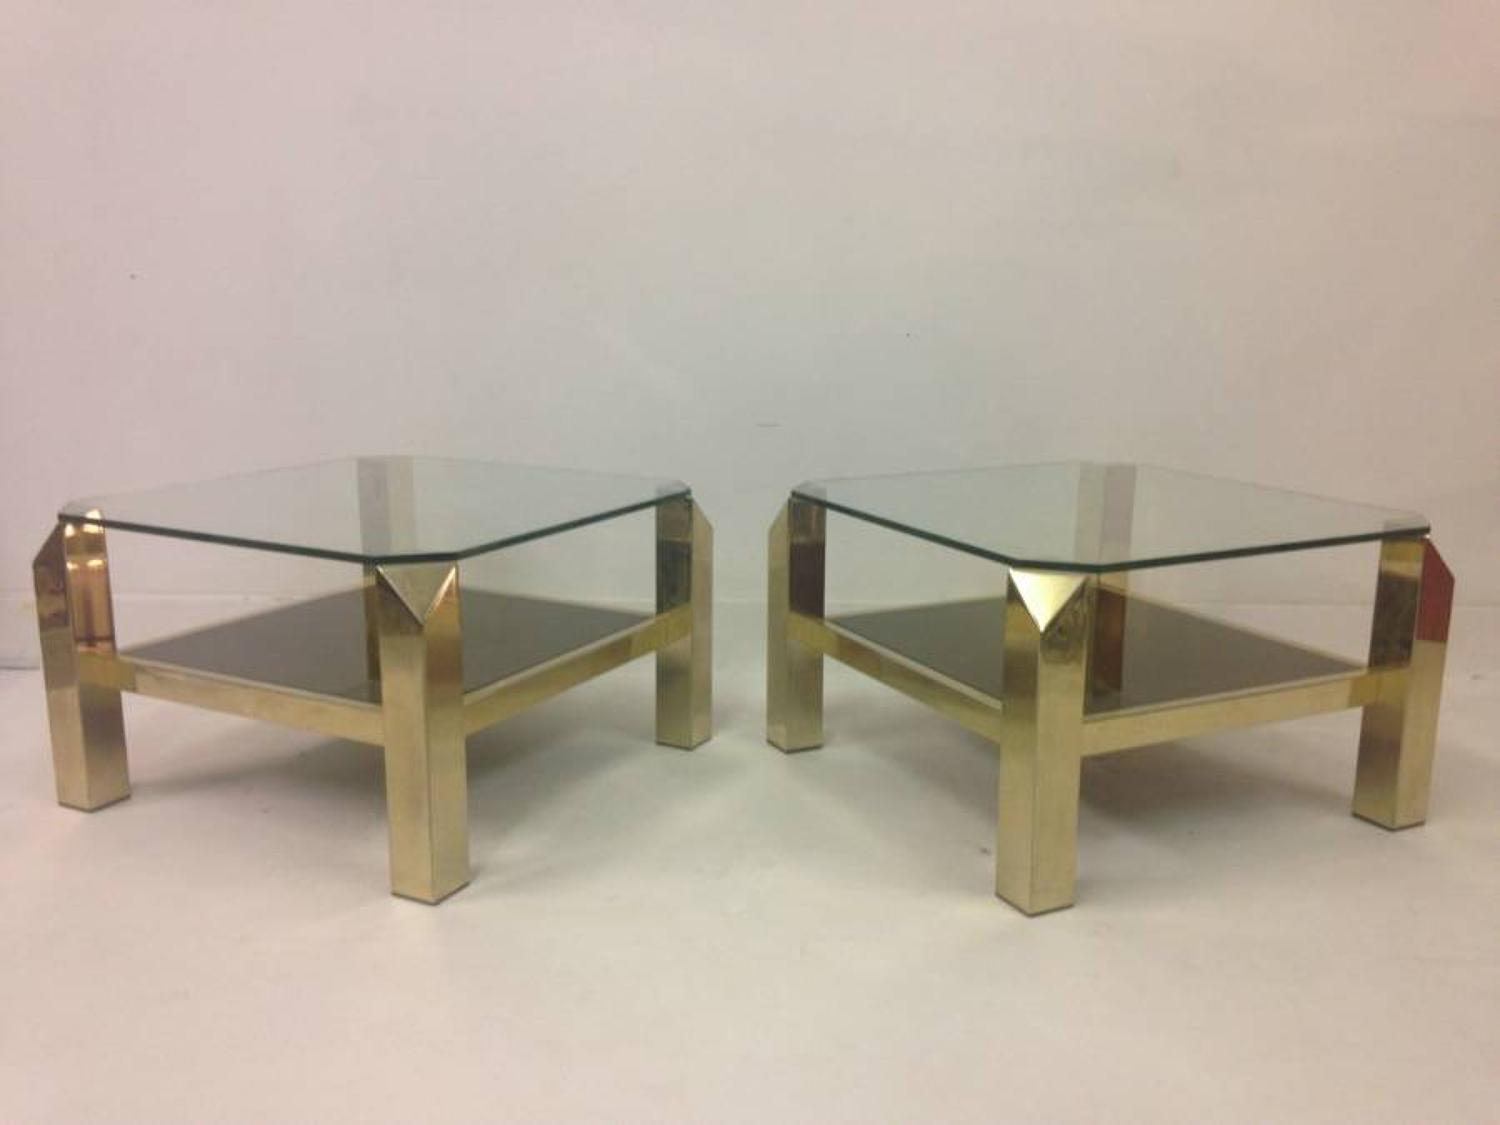 A pair of gold plated side tables